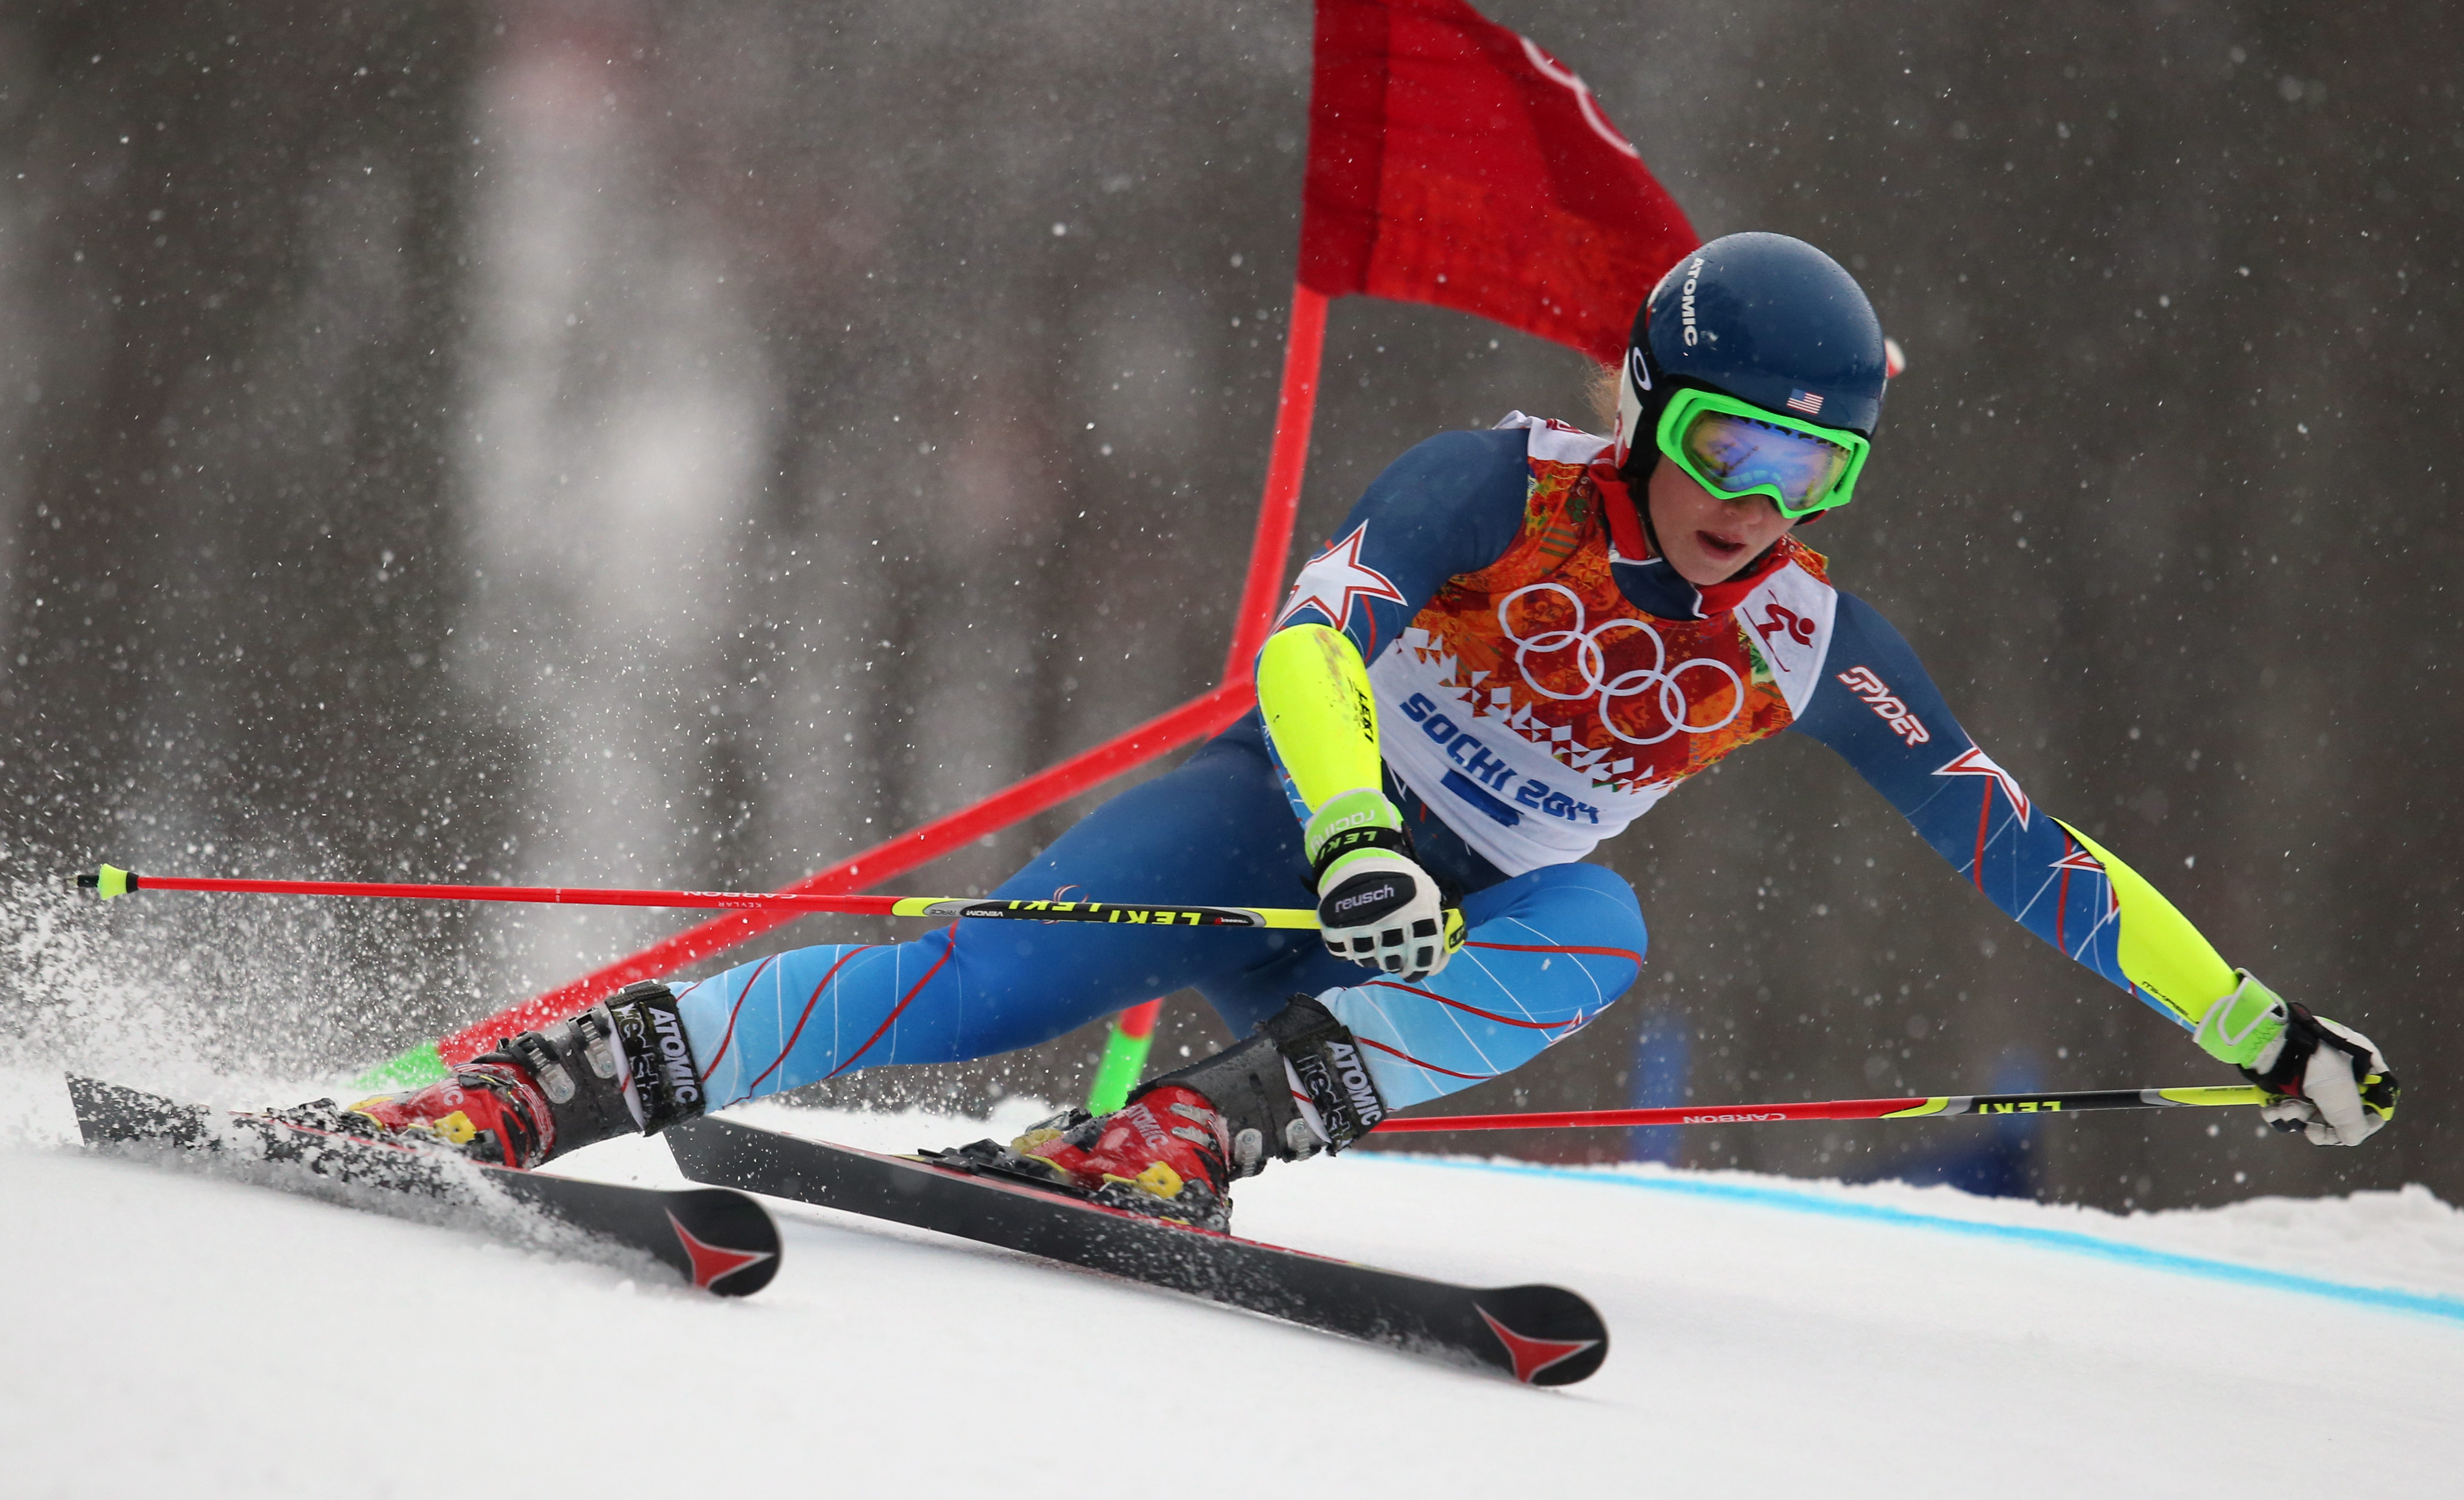 United States' Mikaela Shiffrin passes a gate in the first run of the women's giant slalom at the Sochi 2014 Winter Olympics, Tuesday, Feb. 18, 2014, in Krasnaya Polyana, Russia.(AP Photo/Alessandro Trovati)